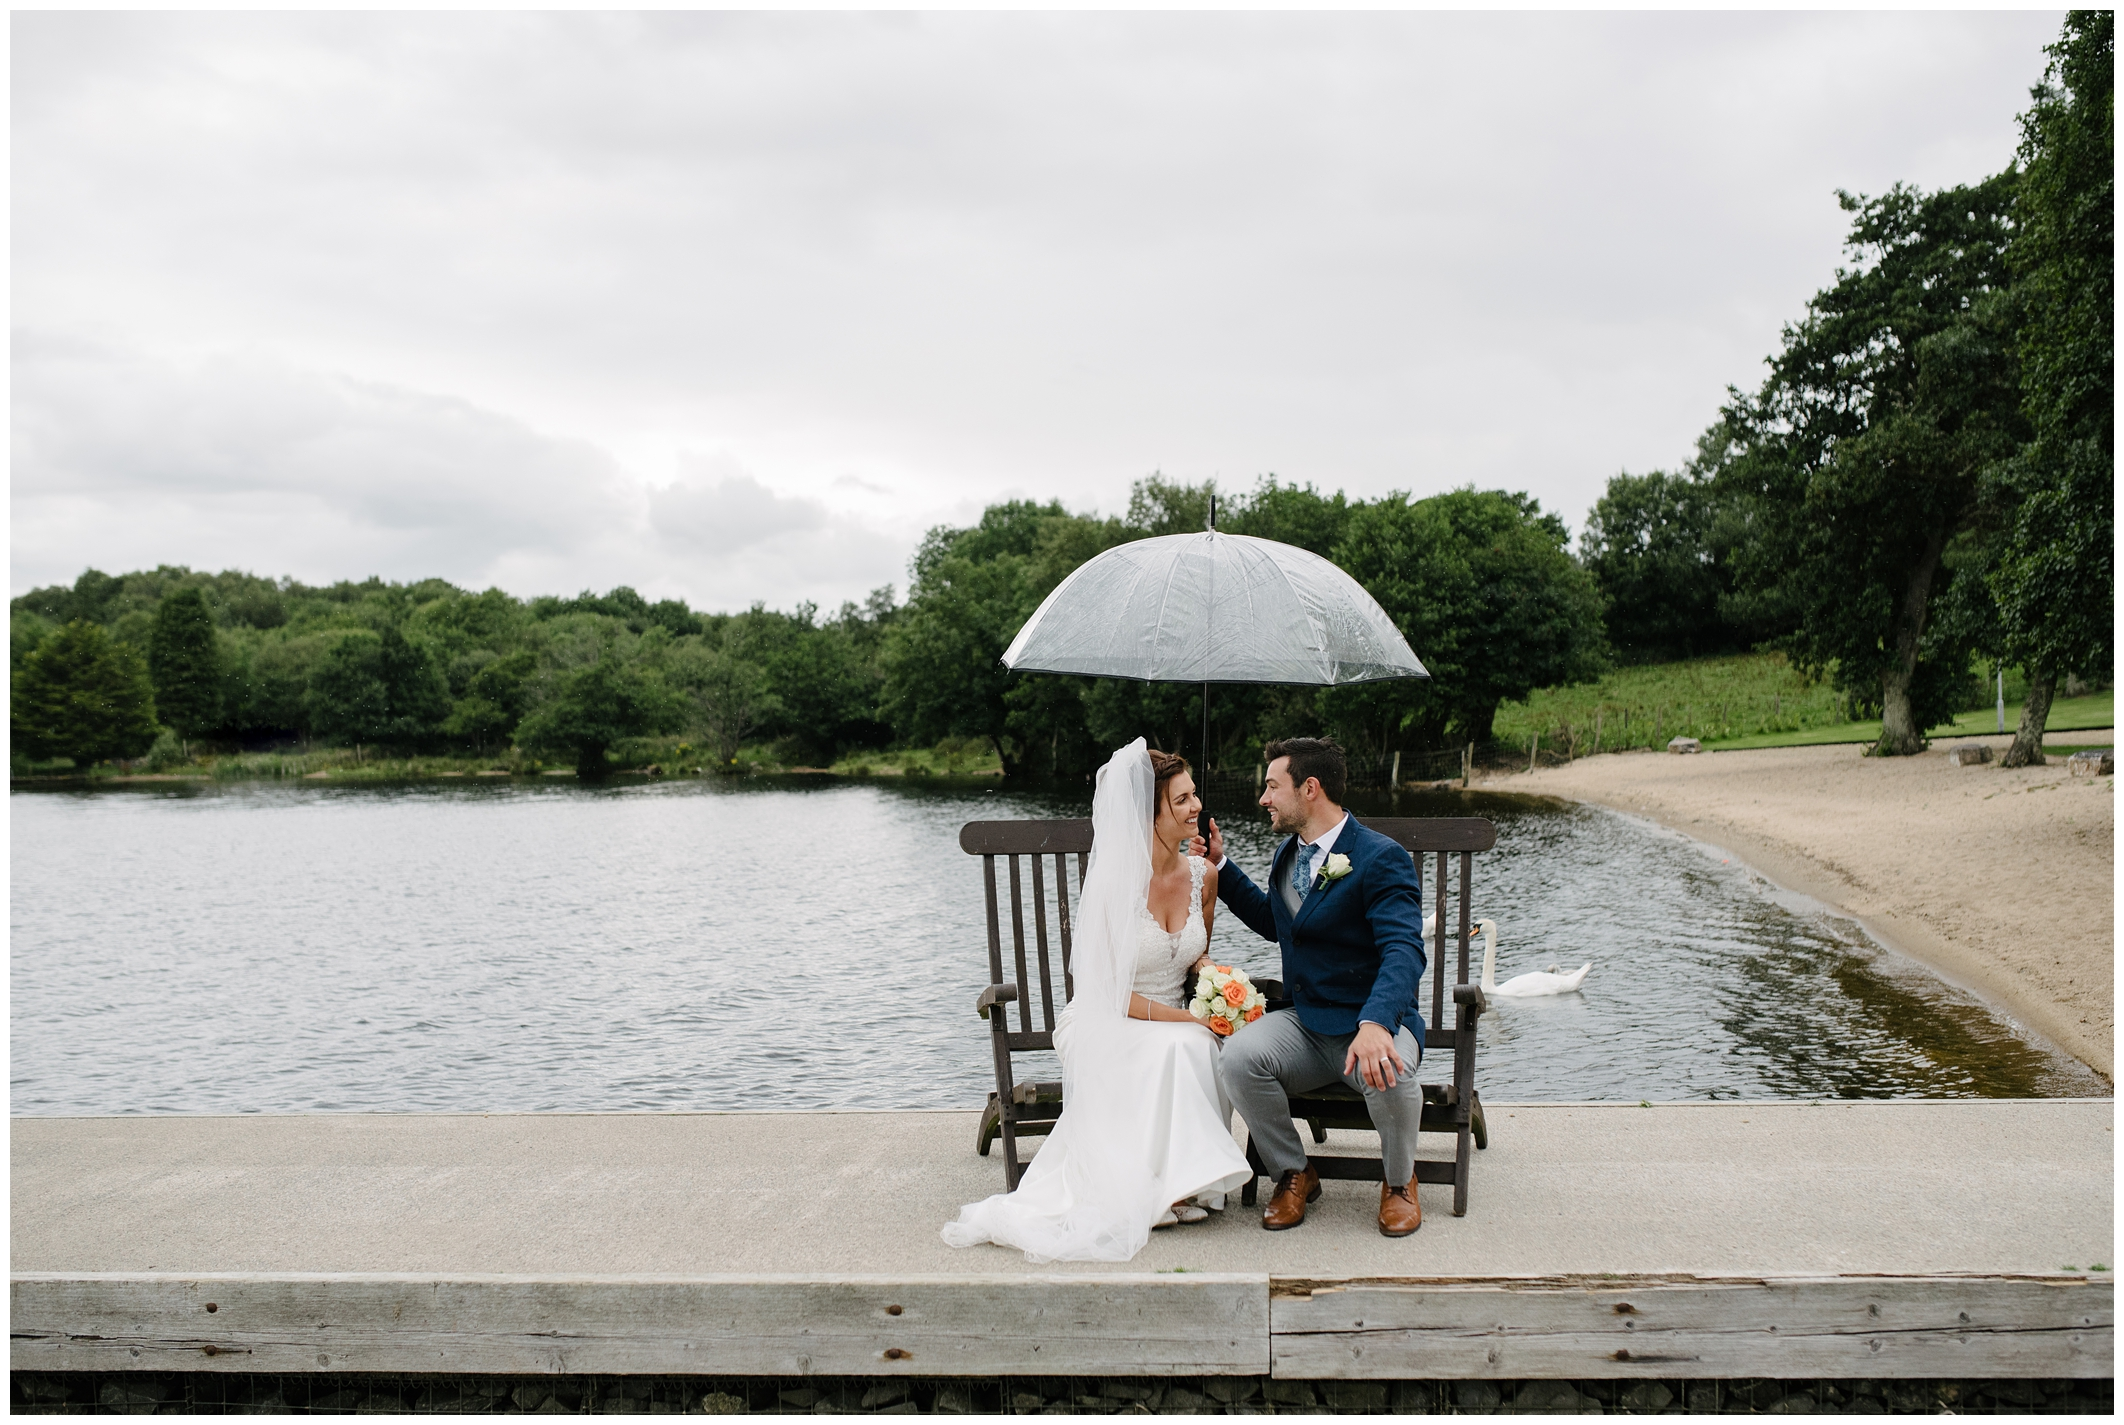 Lynsey_Andy_Rossharbour_Fermanagh_wedding_jude_browne_photography_0110.jpg